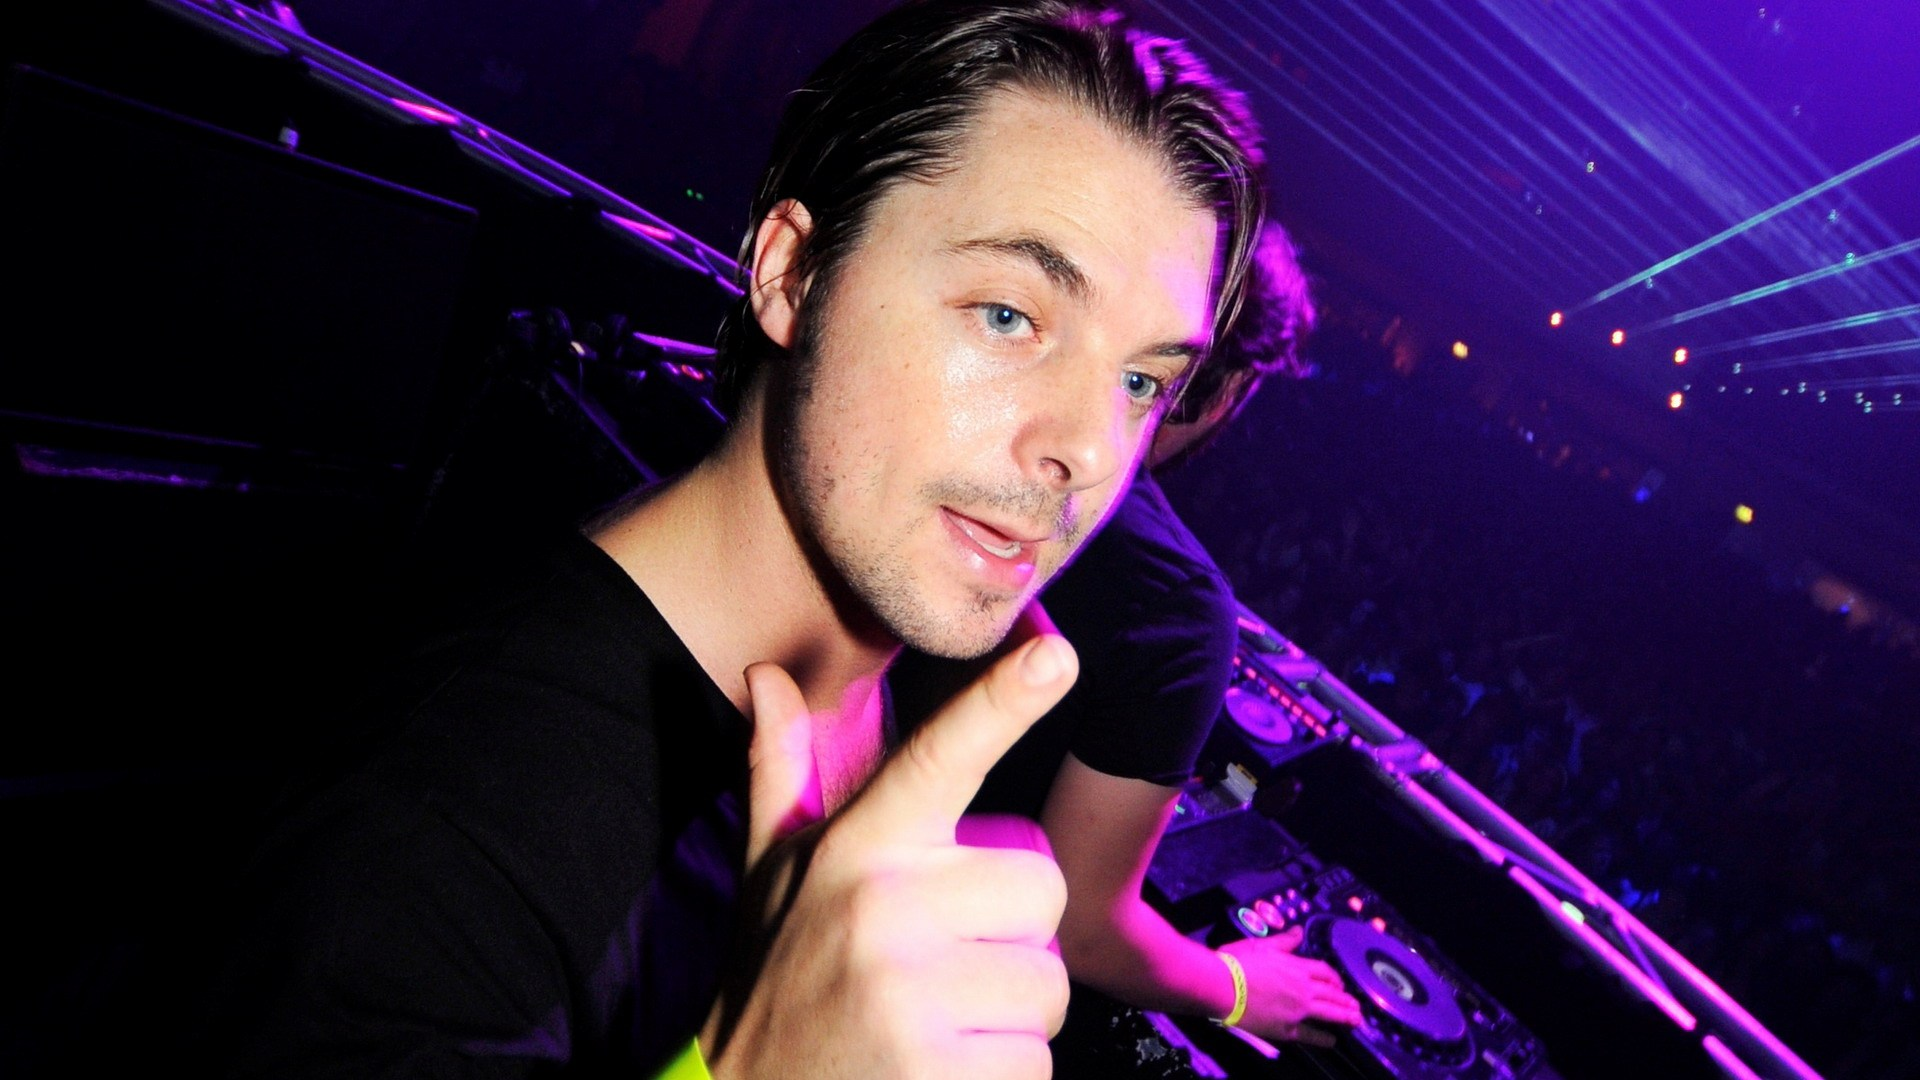 Nothing But Love av Axwell